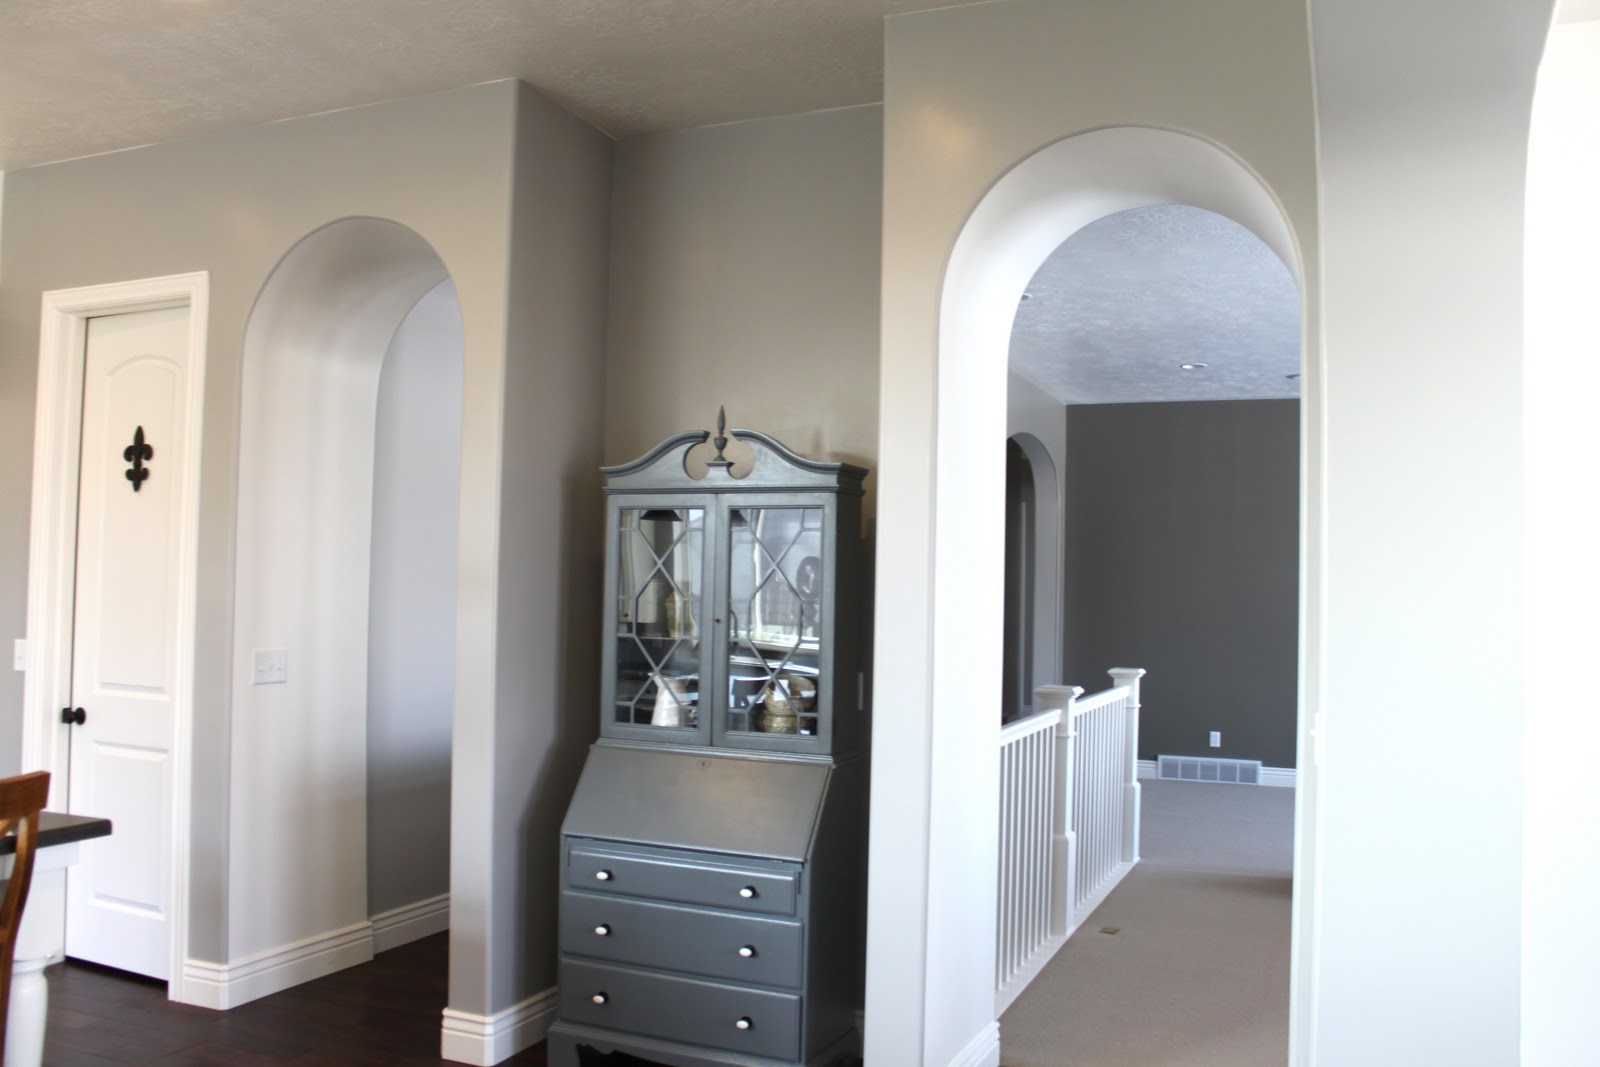 Paint color benjamin moore ozark shadows lights over island from home depot 35 hardwood floors by ark the french collection color maple kahlua